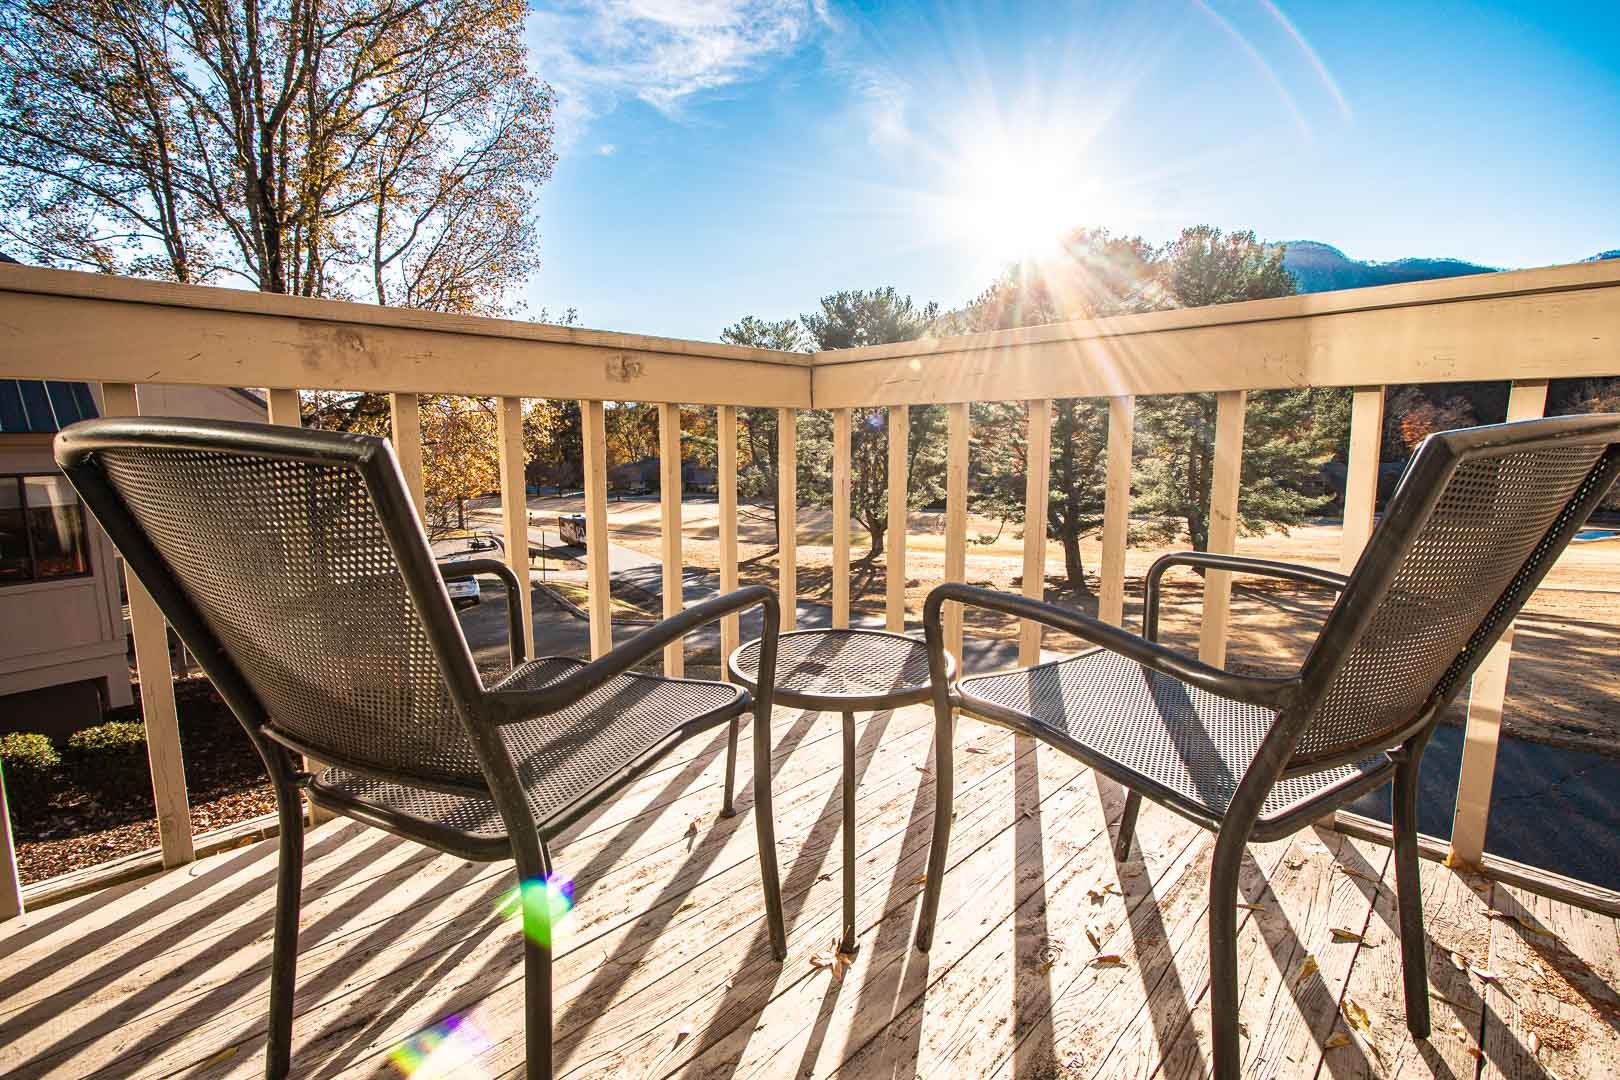 A relaxing view from the balcony at VRI's Mountain Loft Resort in North Carolina.